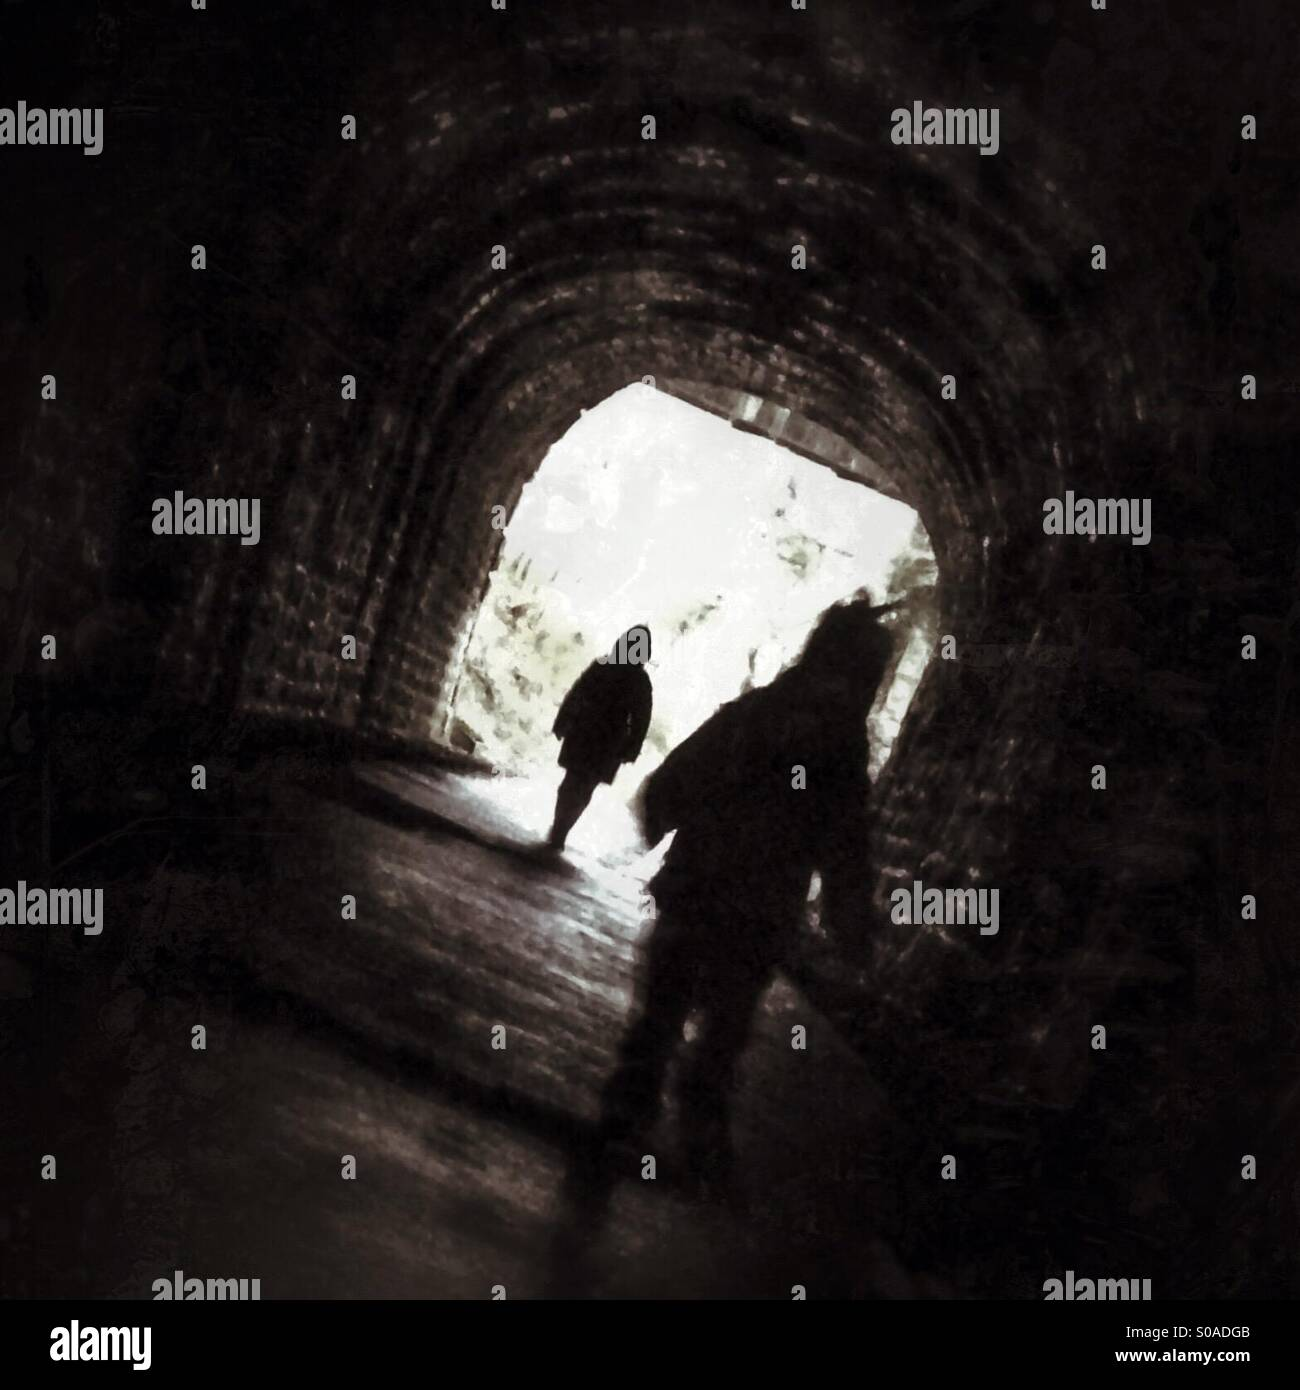 Being followed in a dark tunnel - Stock Image